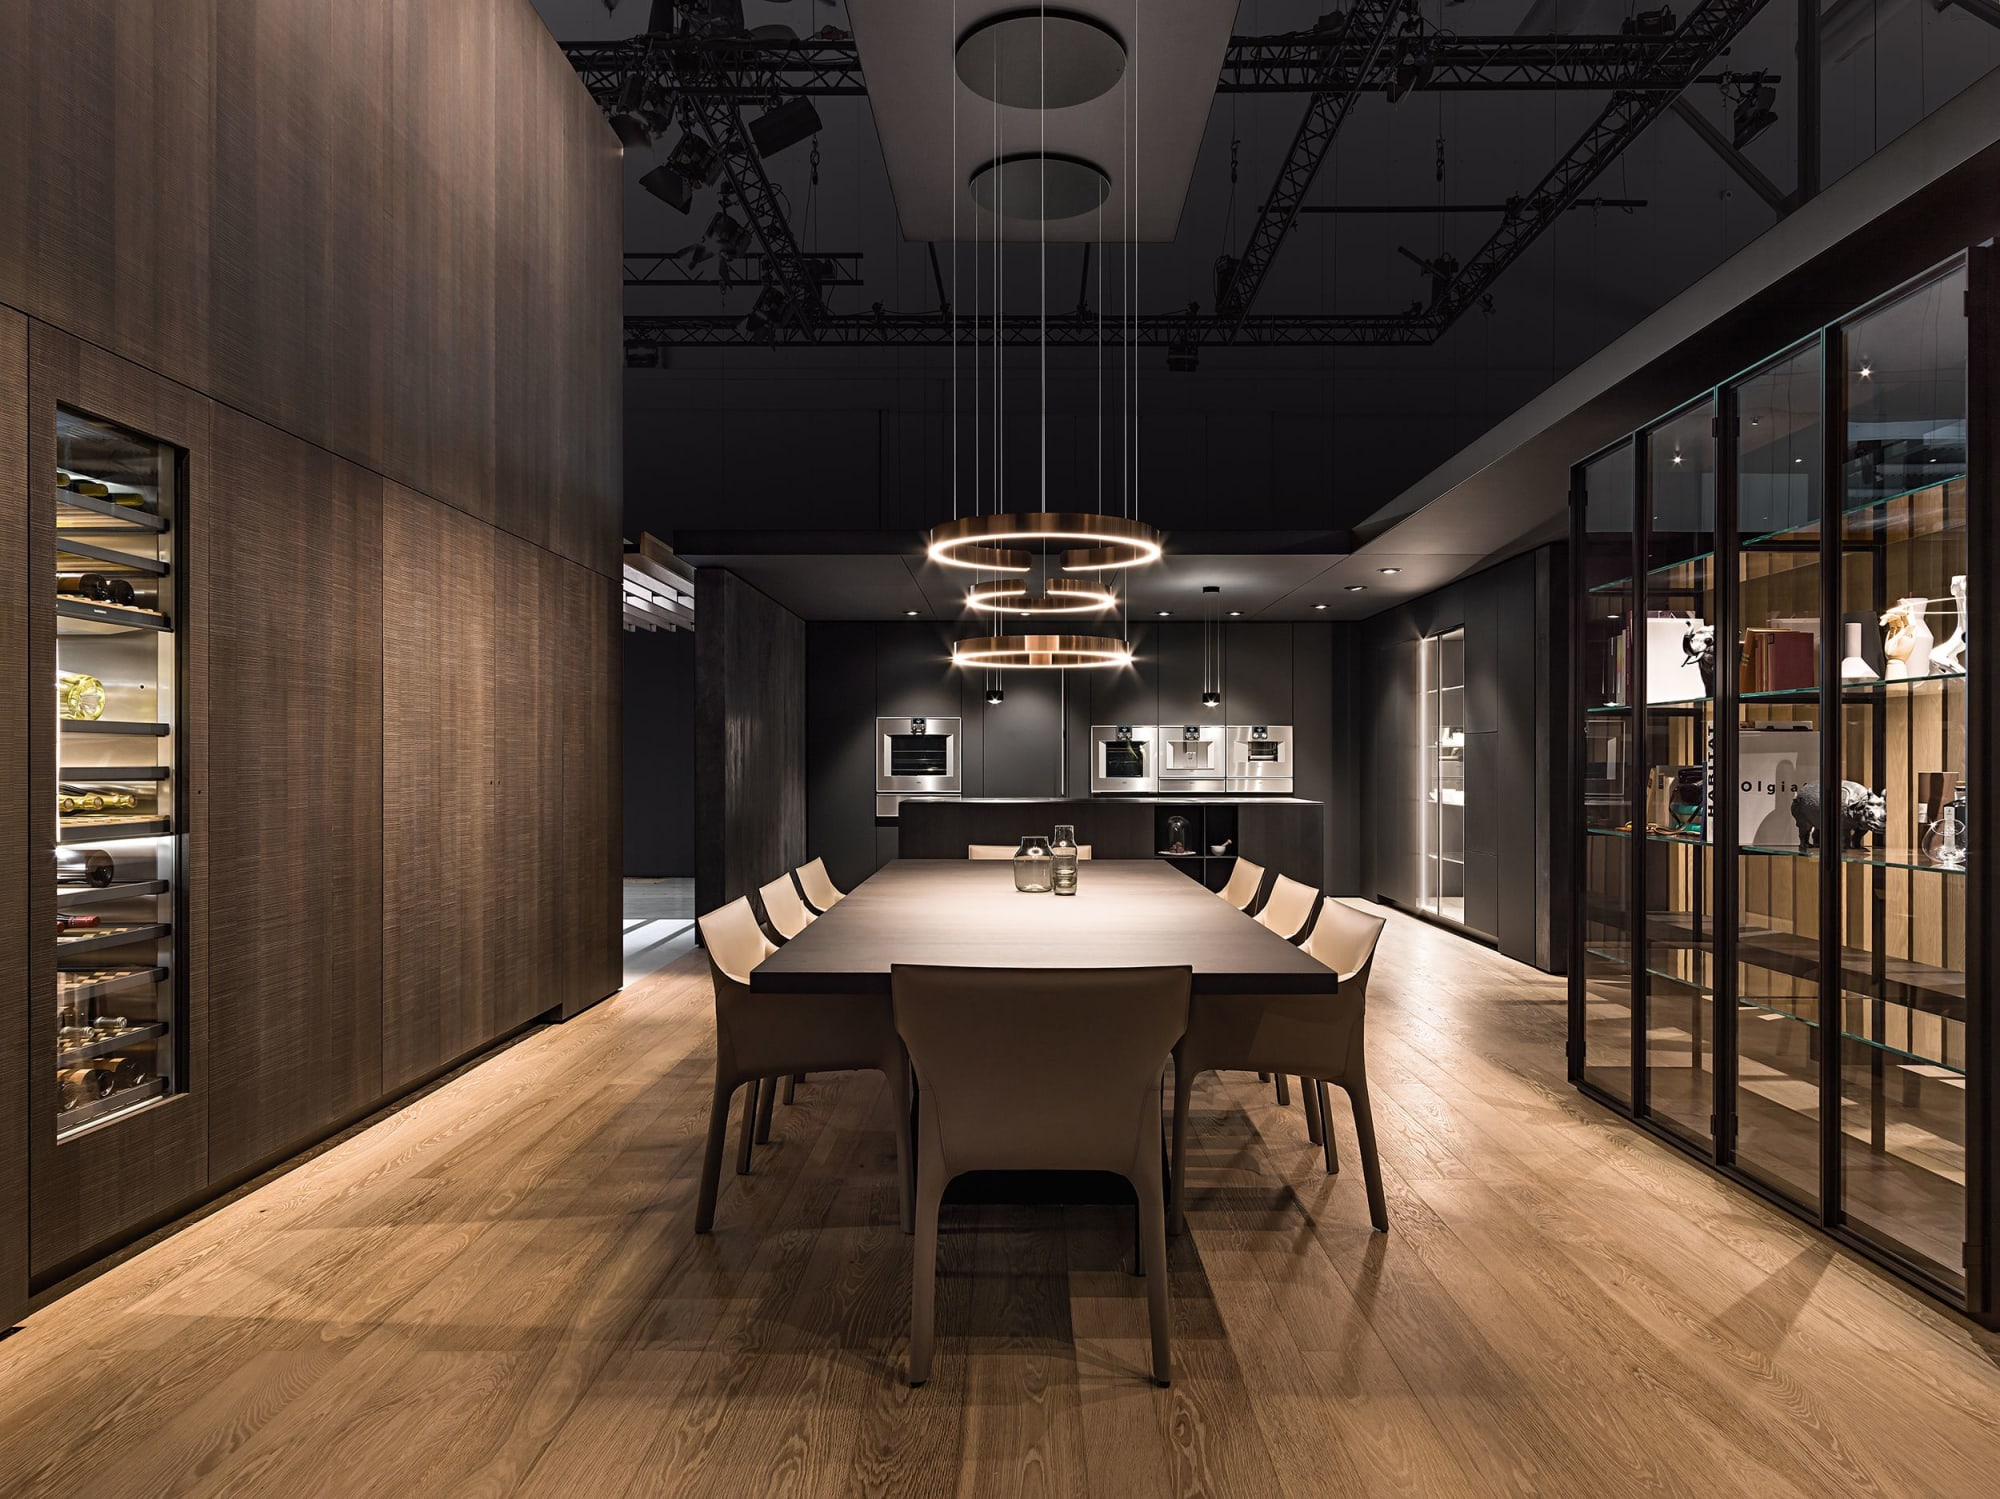 Interior Design by 1zu33 seen at Fiera Milano | Rho, Rho - Booth at Eurocucina 2018, Gaggenau